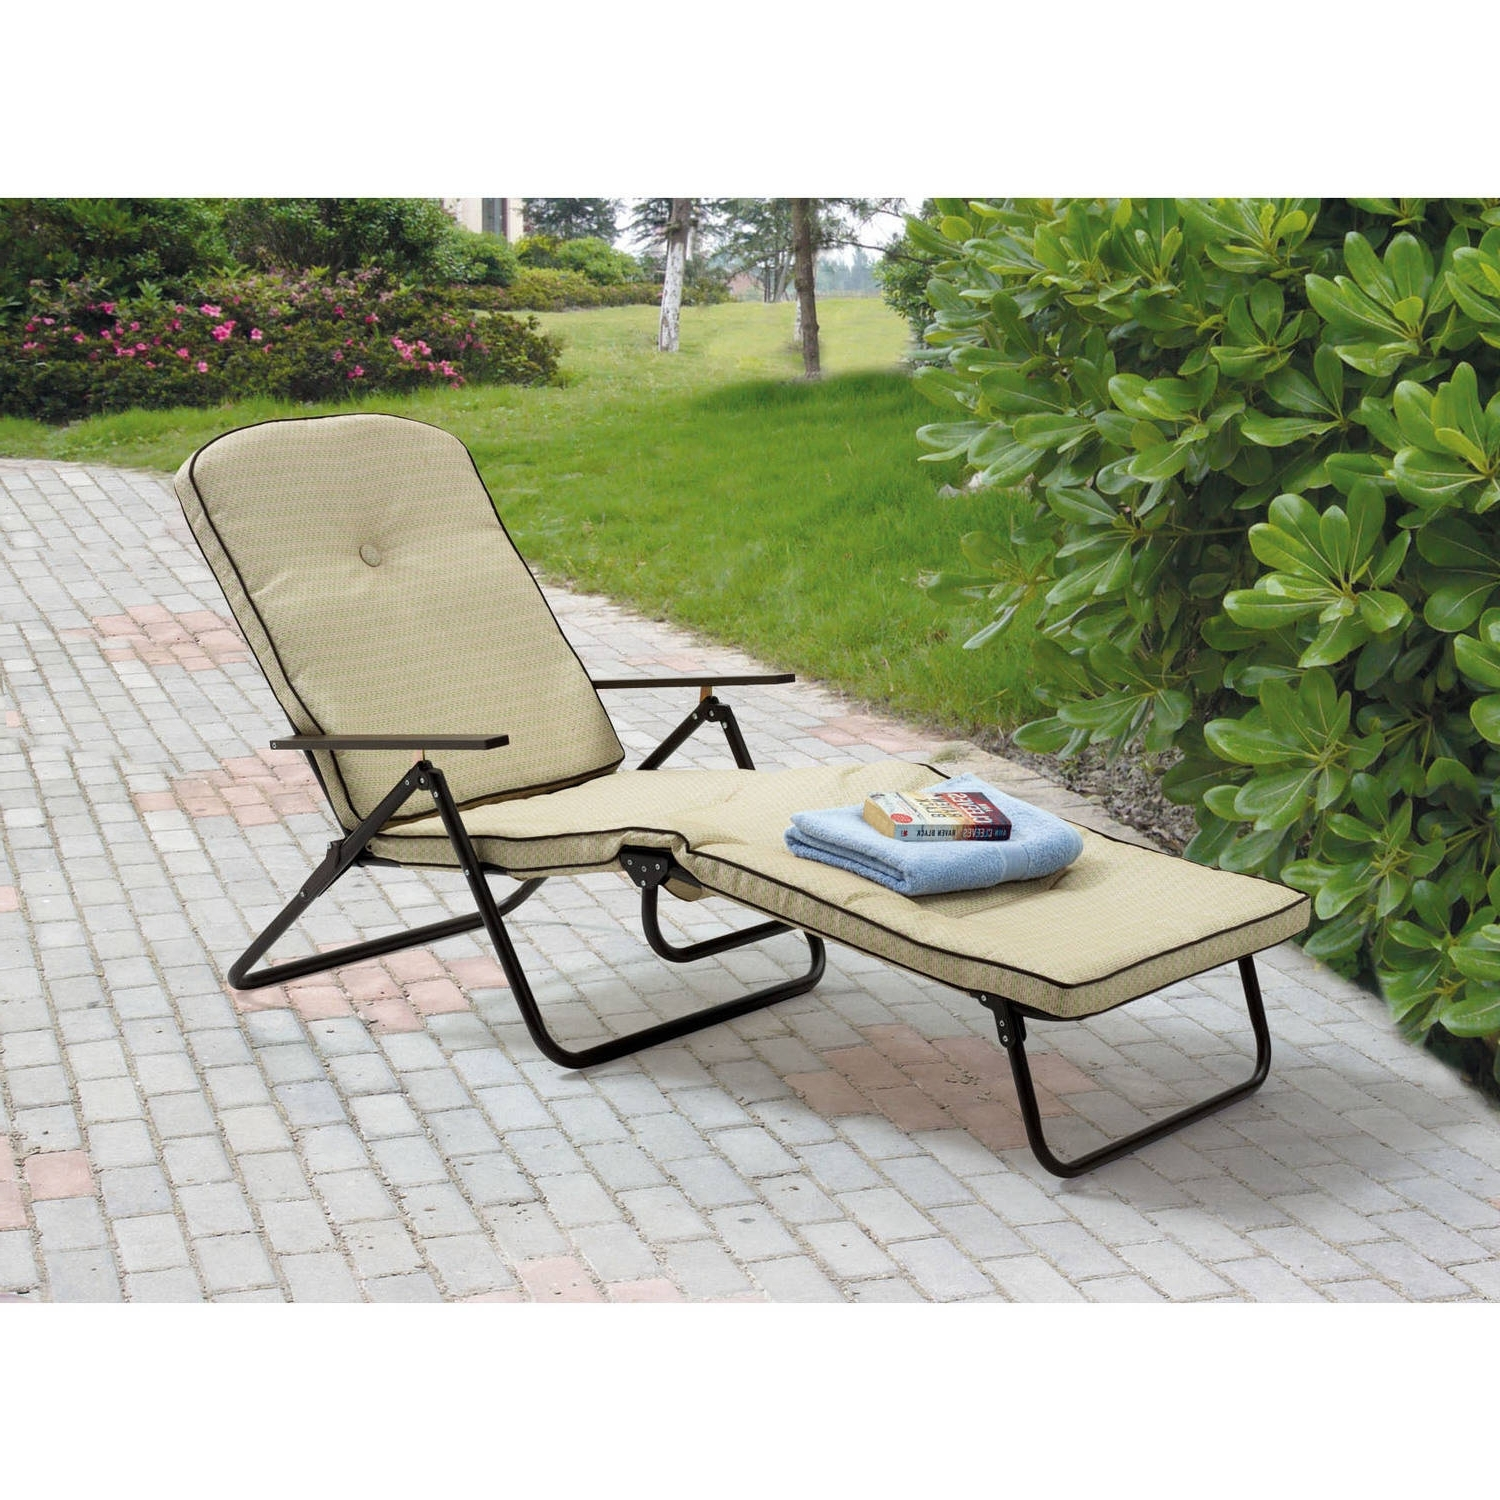 Cheap Folding Chaise Lounge Chairs For Outdoor Regarding Famous Mainstays Sand Dune Outdoor Padded Folding Chaise Lounge, Tan (View 5 of 15)